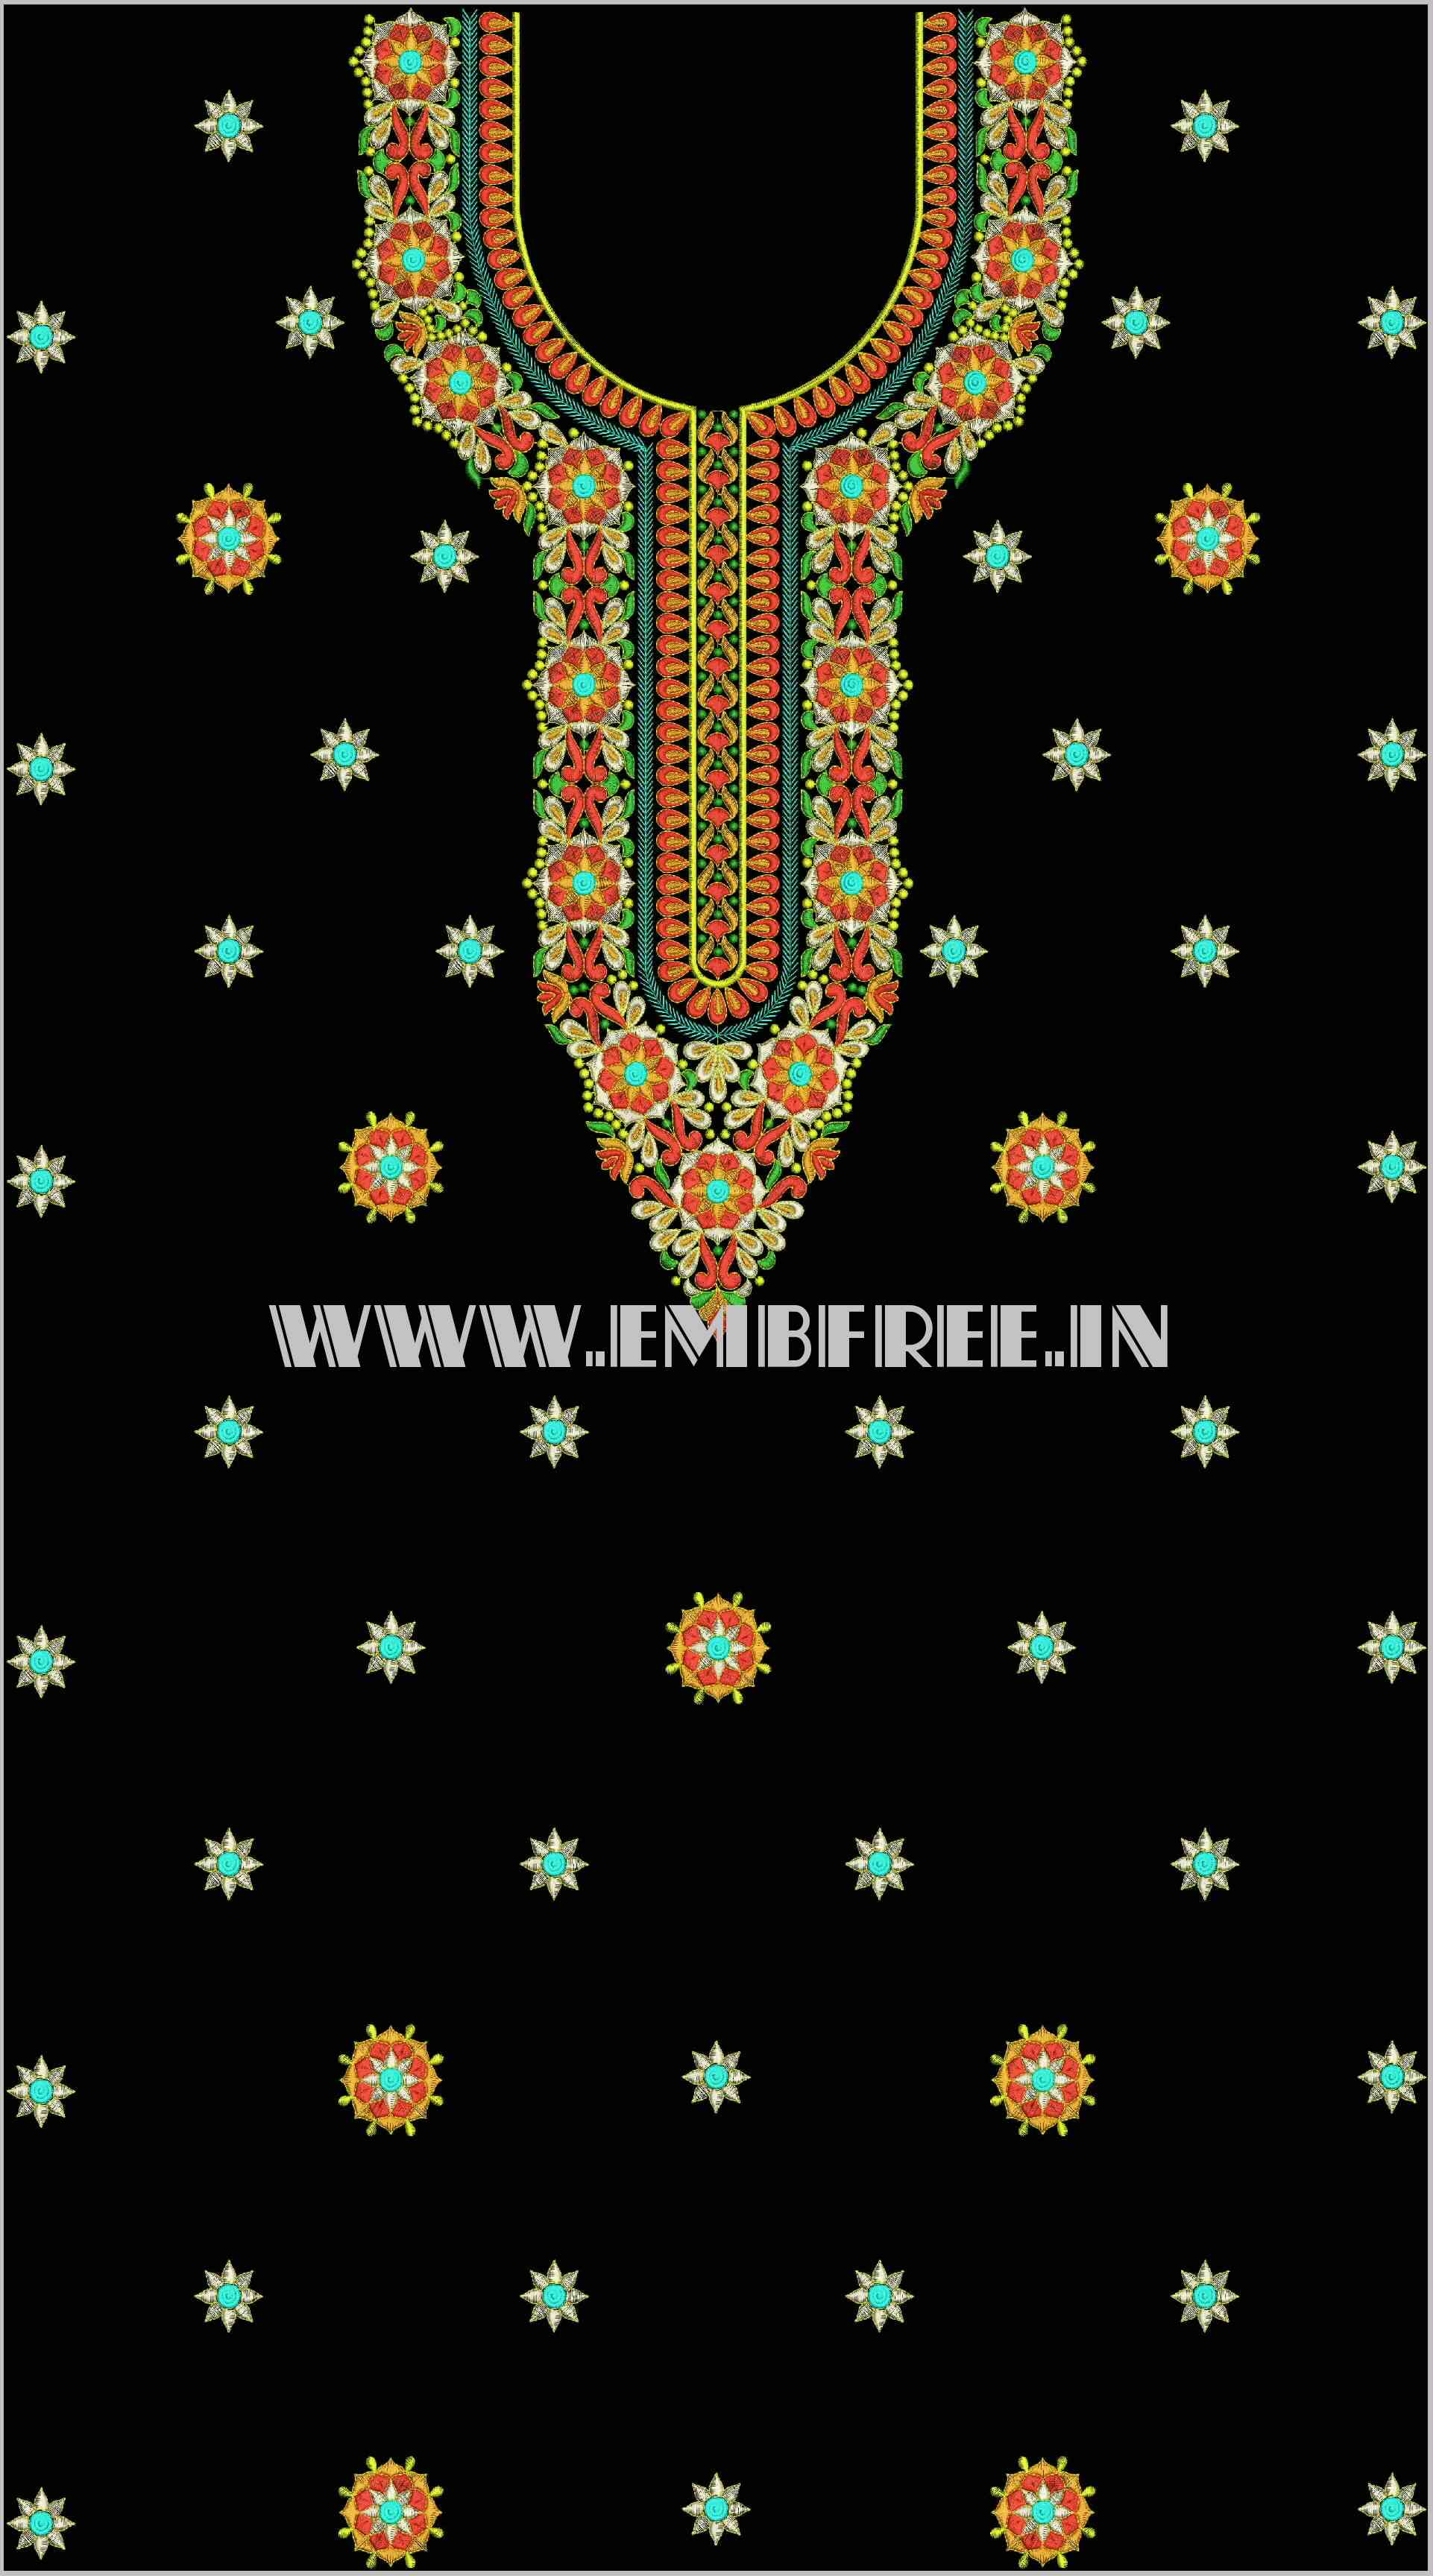 Embroidery Designs Id 2750